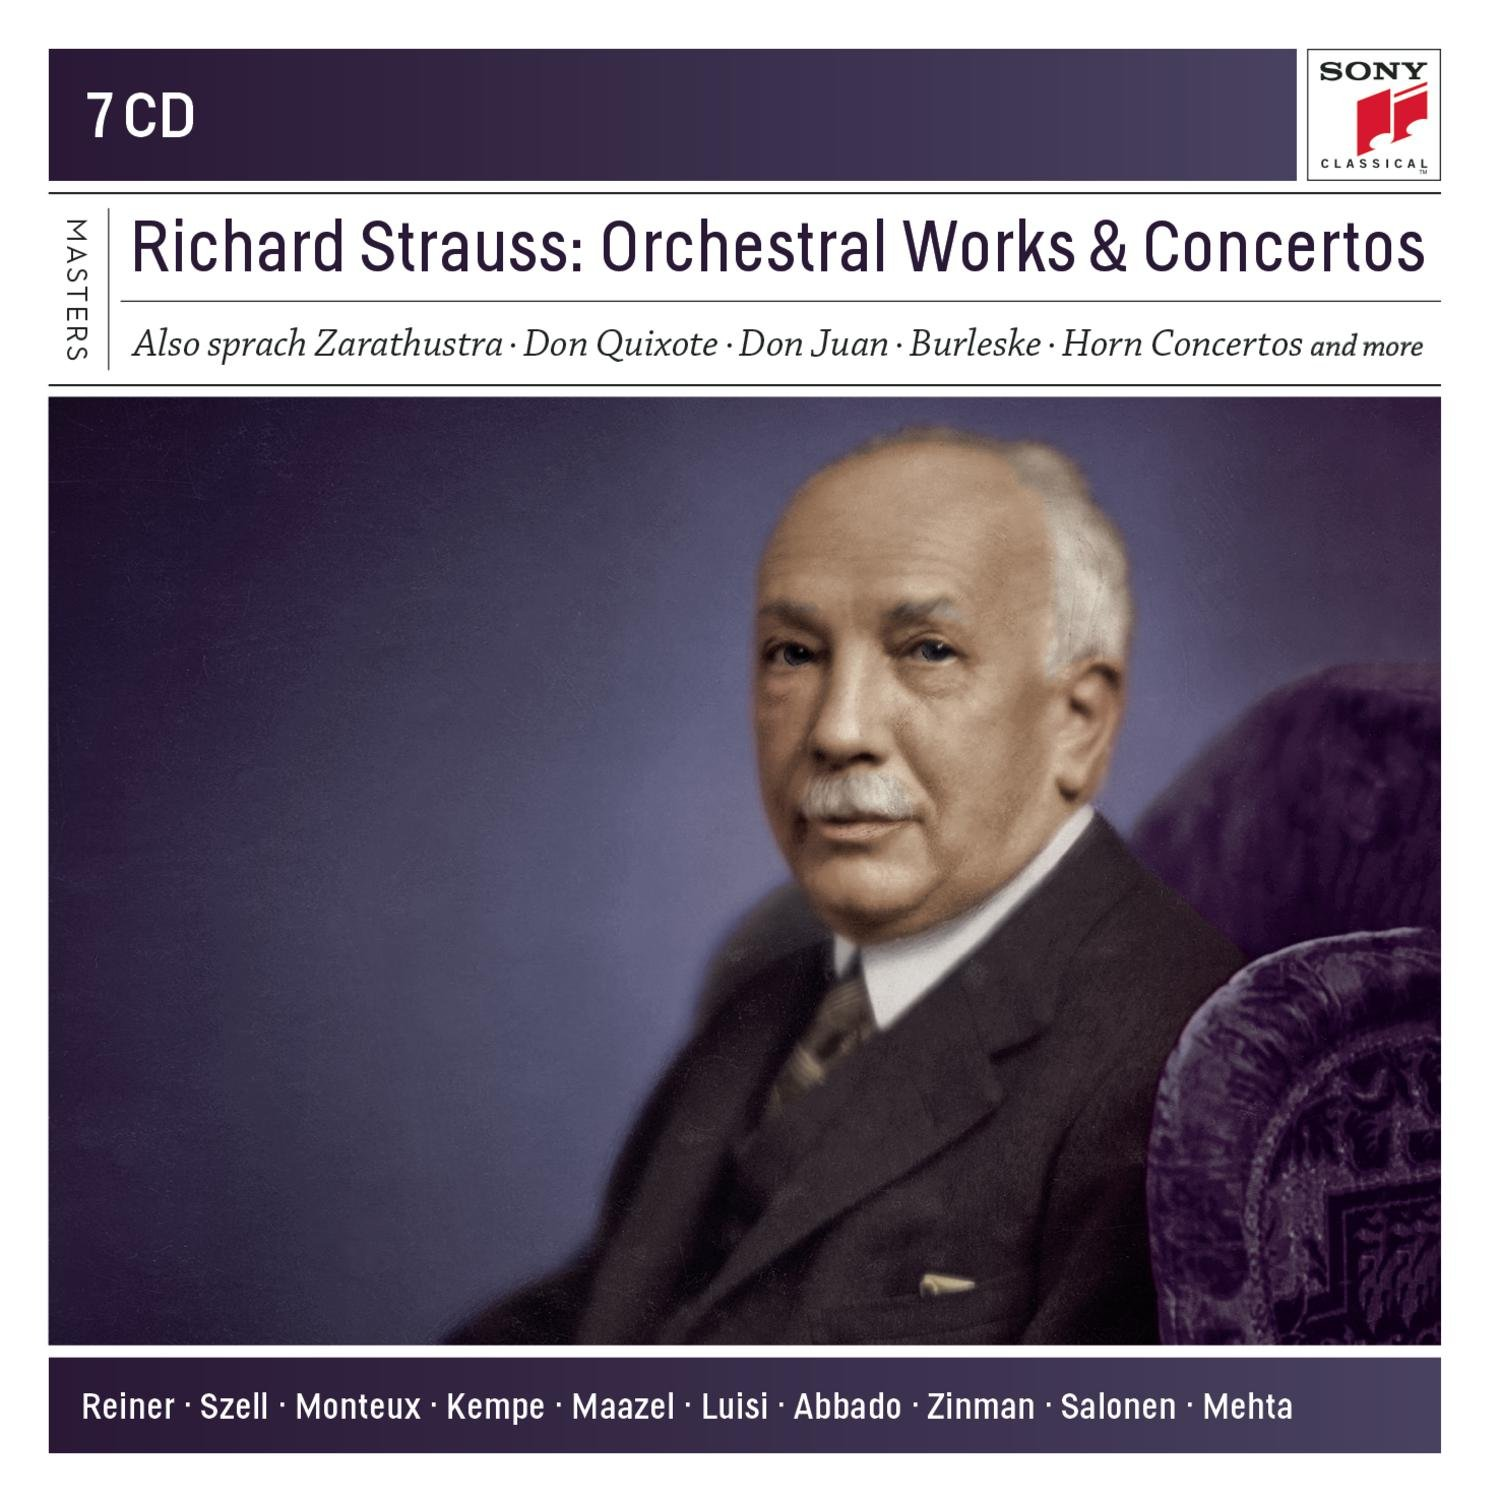 Richard Strauss: Orchestral Works An D Concertos by Sony Music Canada Inc.